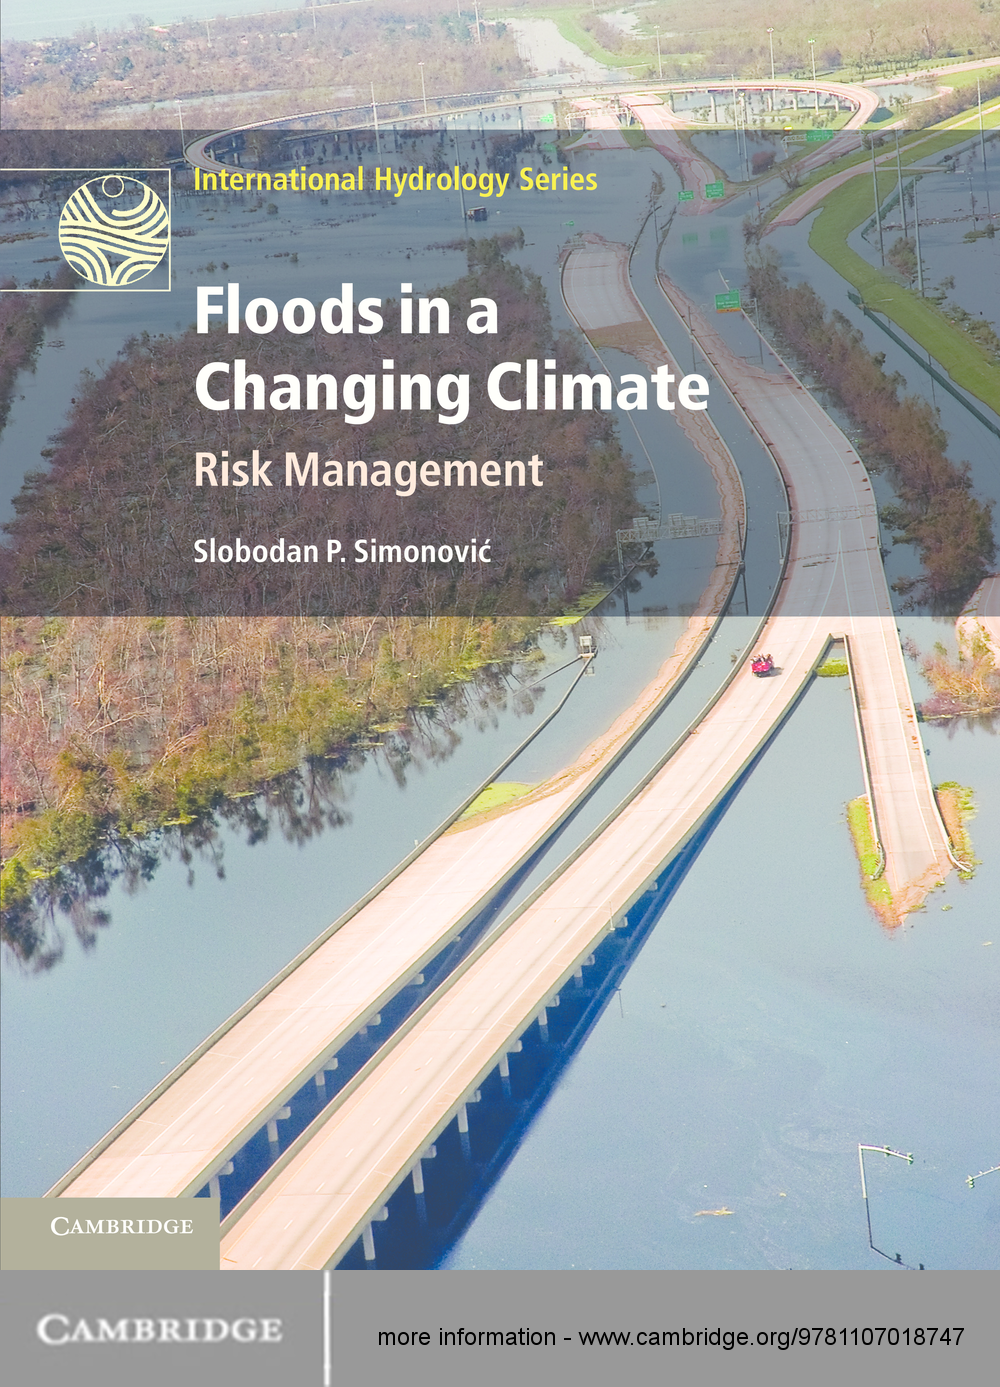 Floods in a Changing Climate: Risk Management